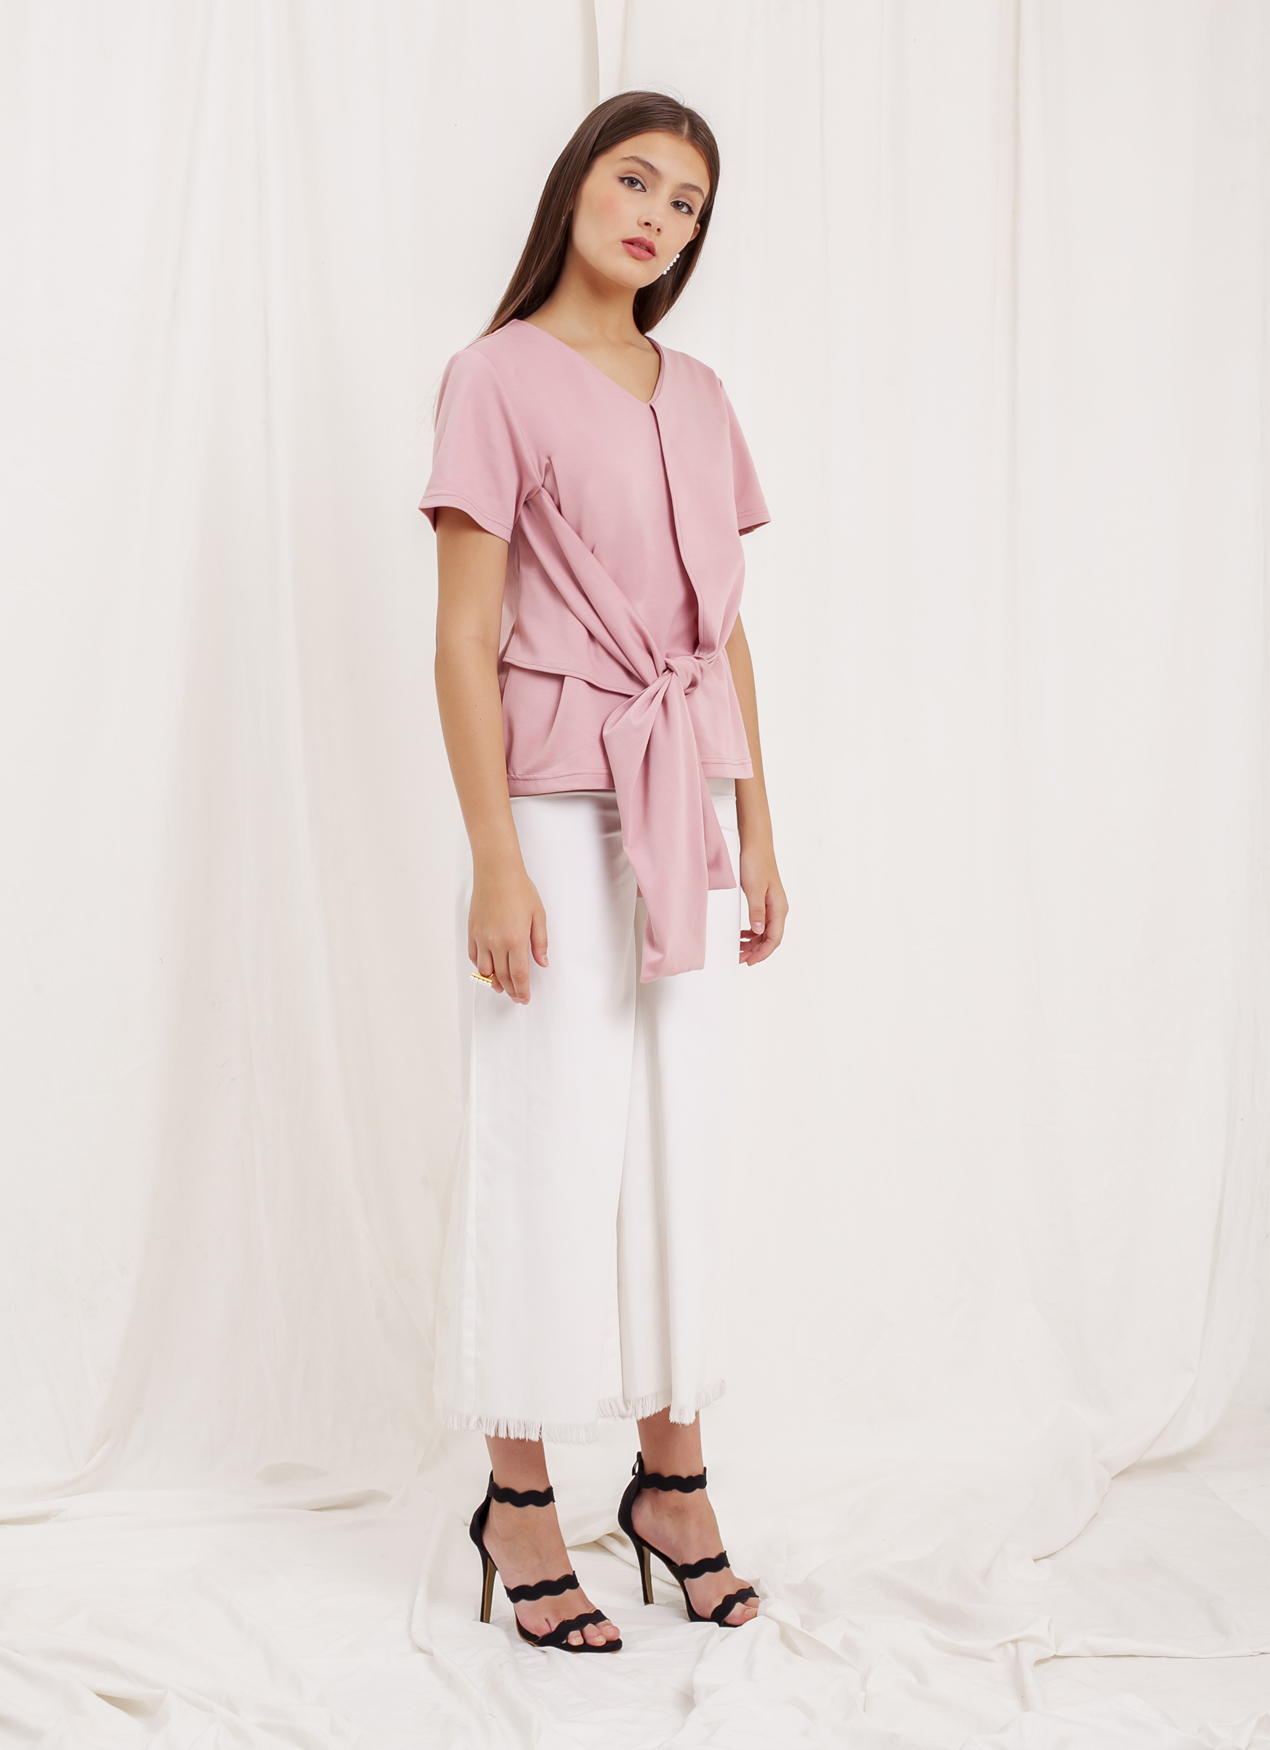 Krom Collective Linea Top - Pink